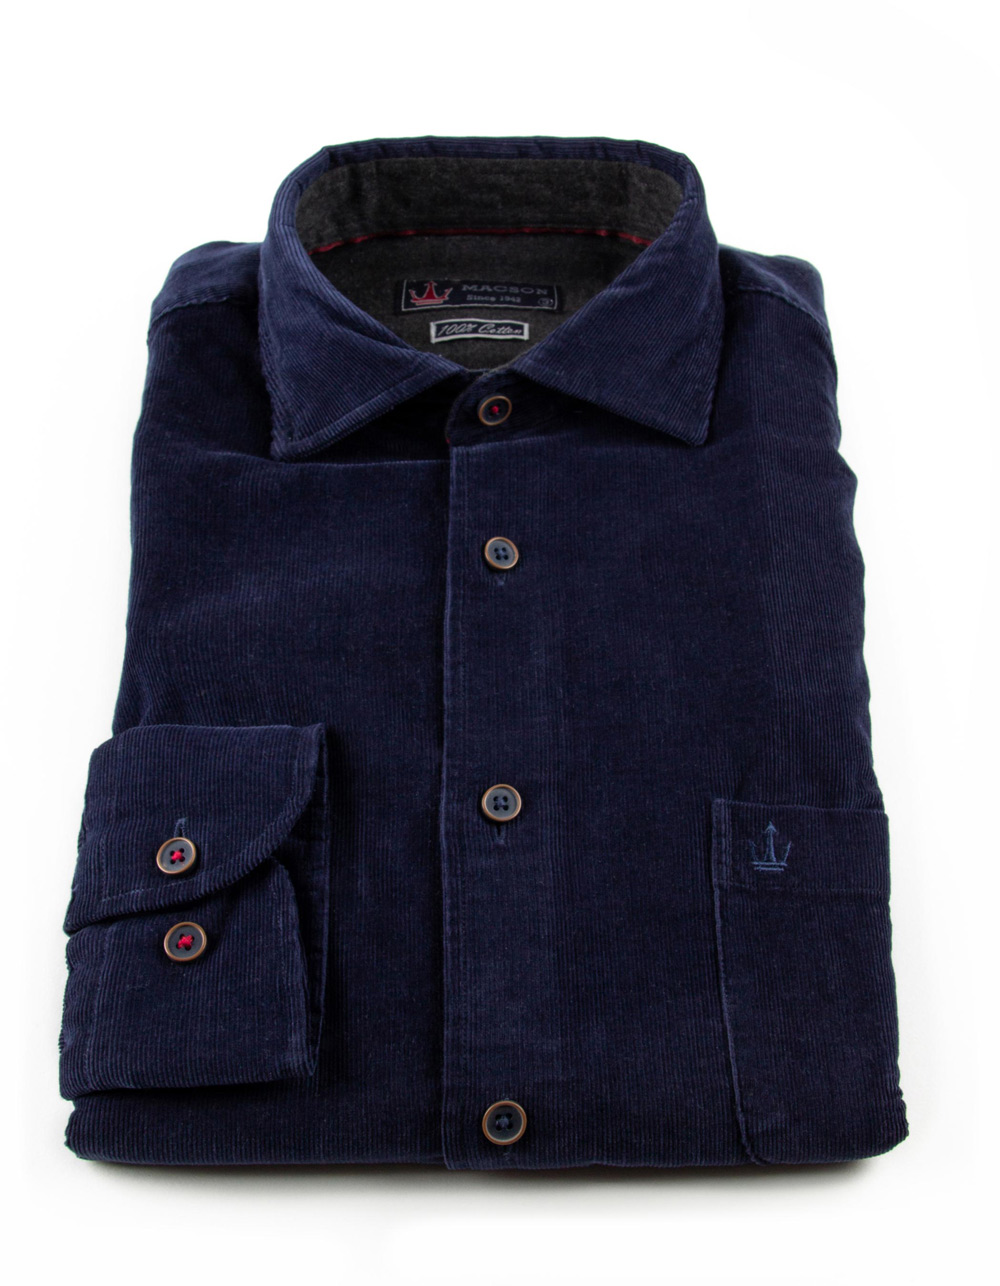 Blue finest corduroy shirt - Backside